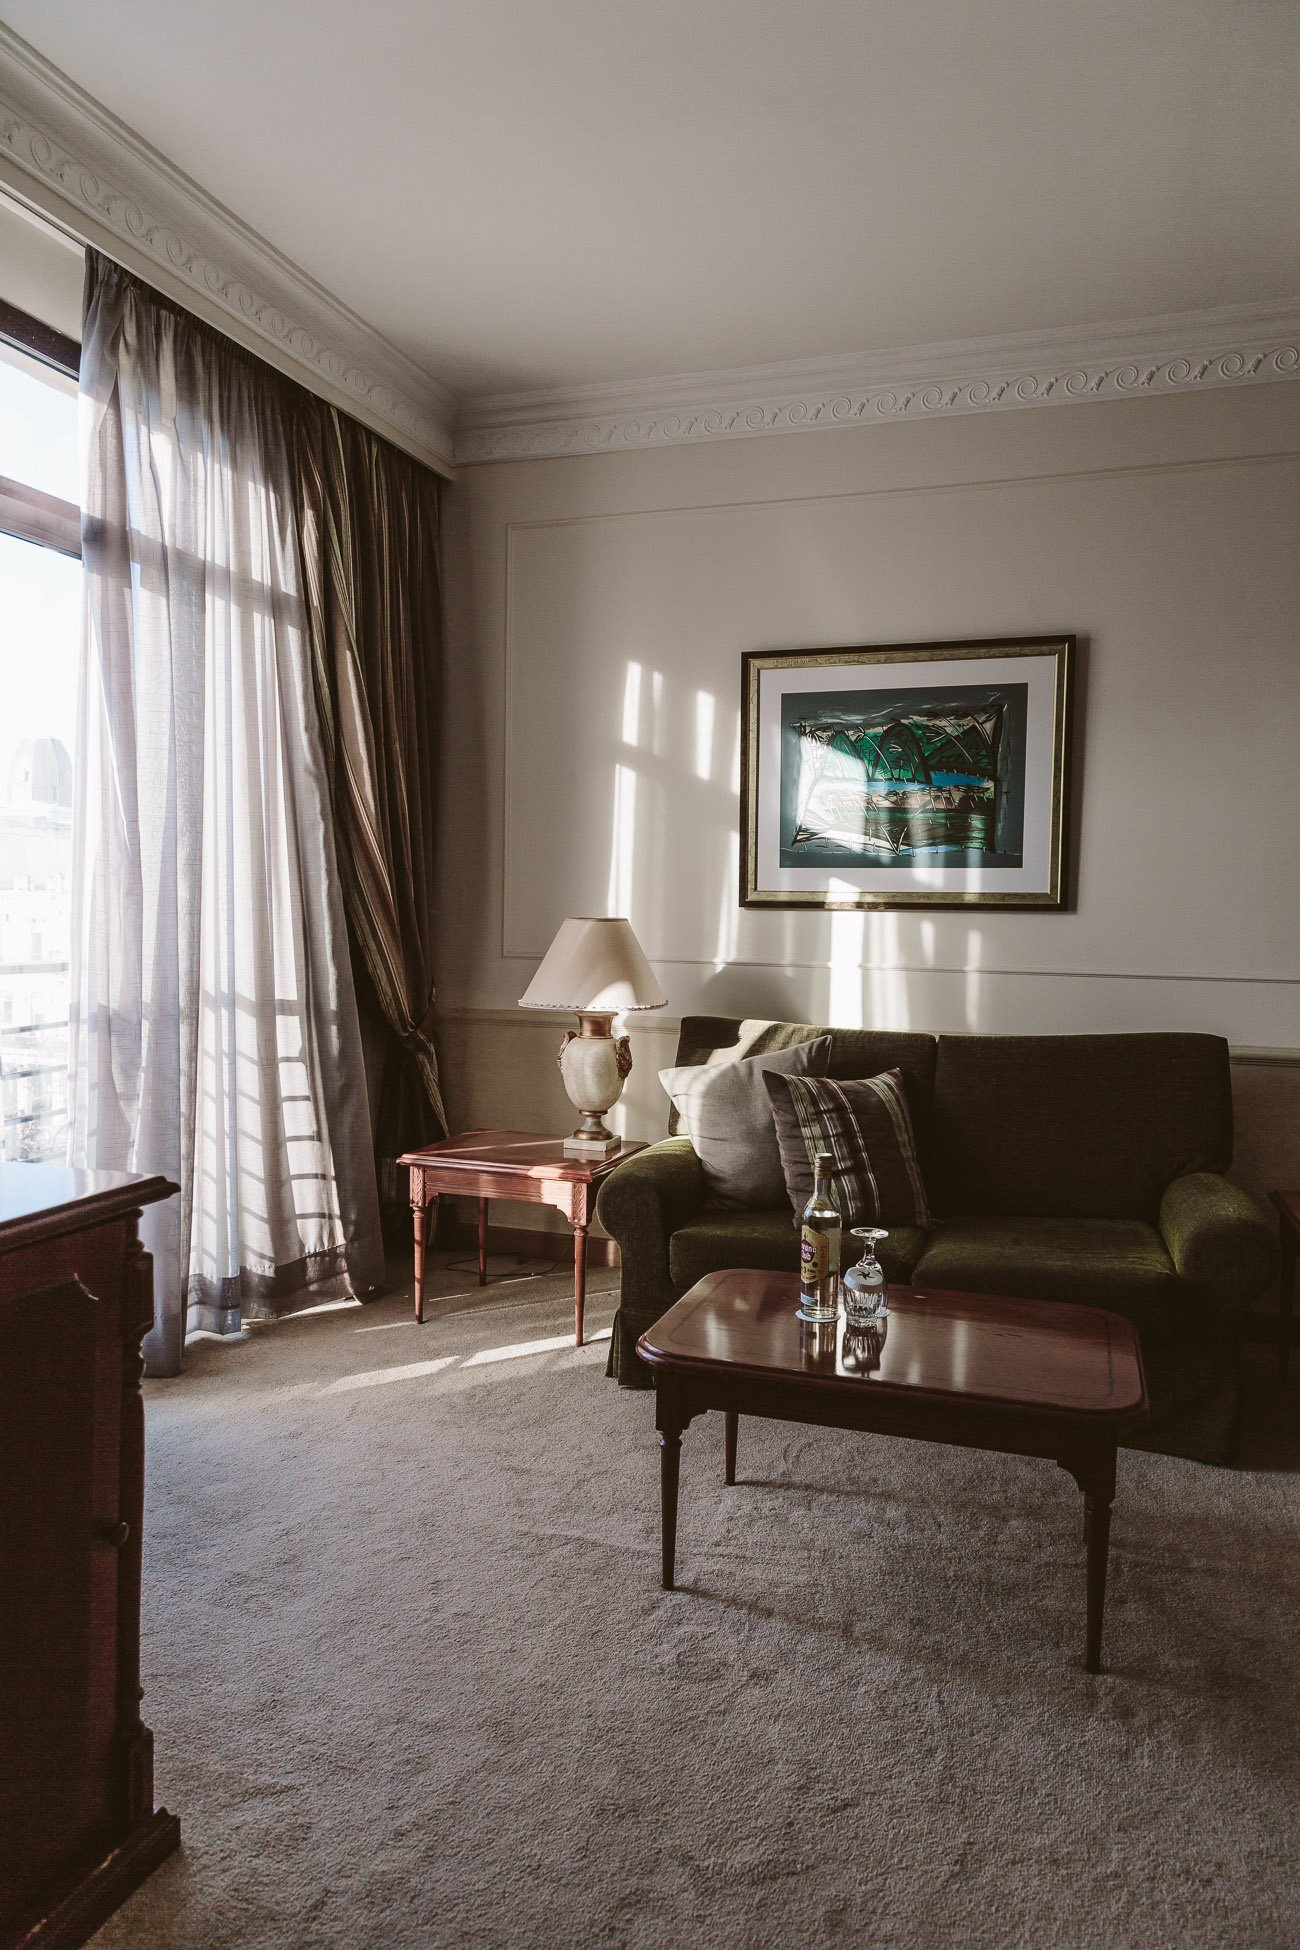 Part of our Suite at Iberostar Parque Central Hotel in Havana Cuba